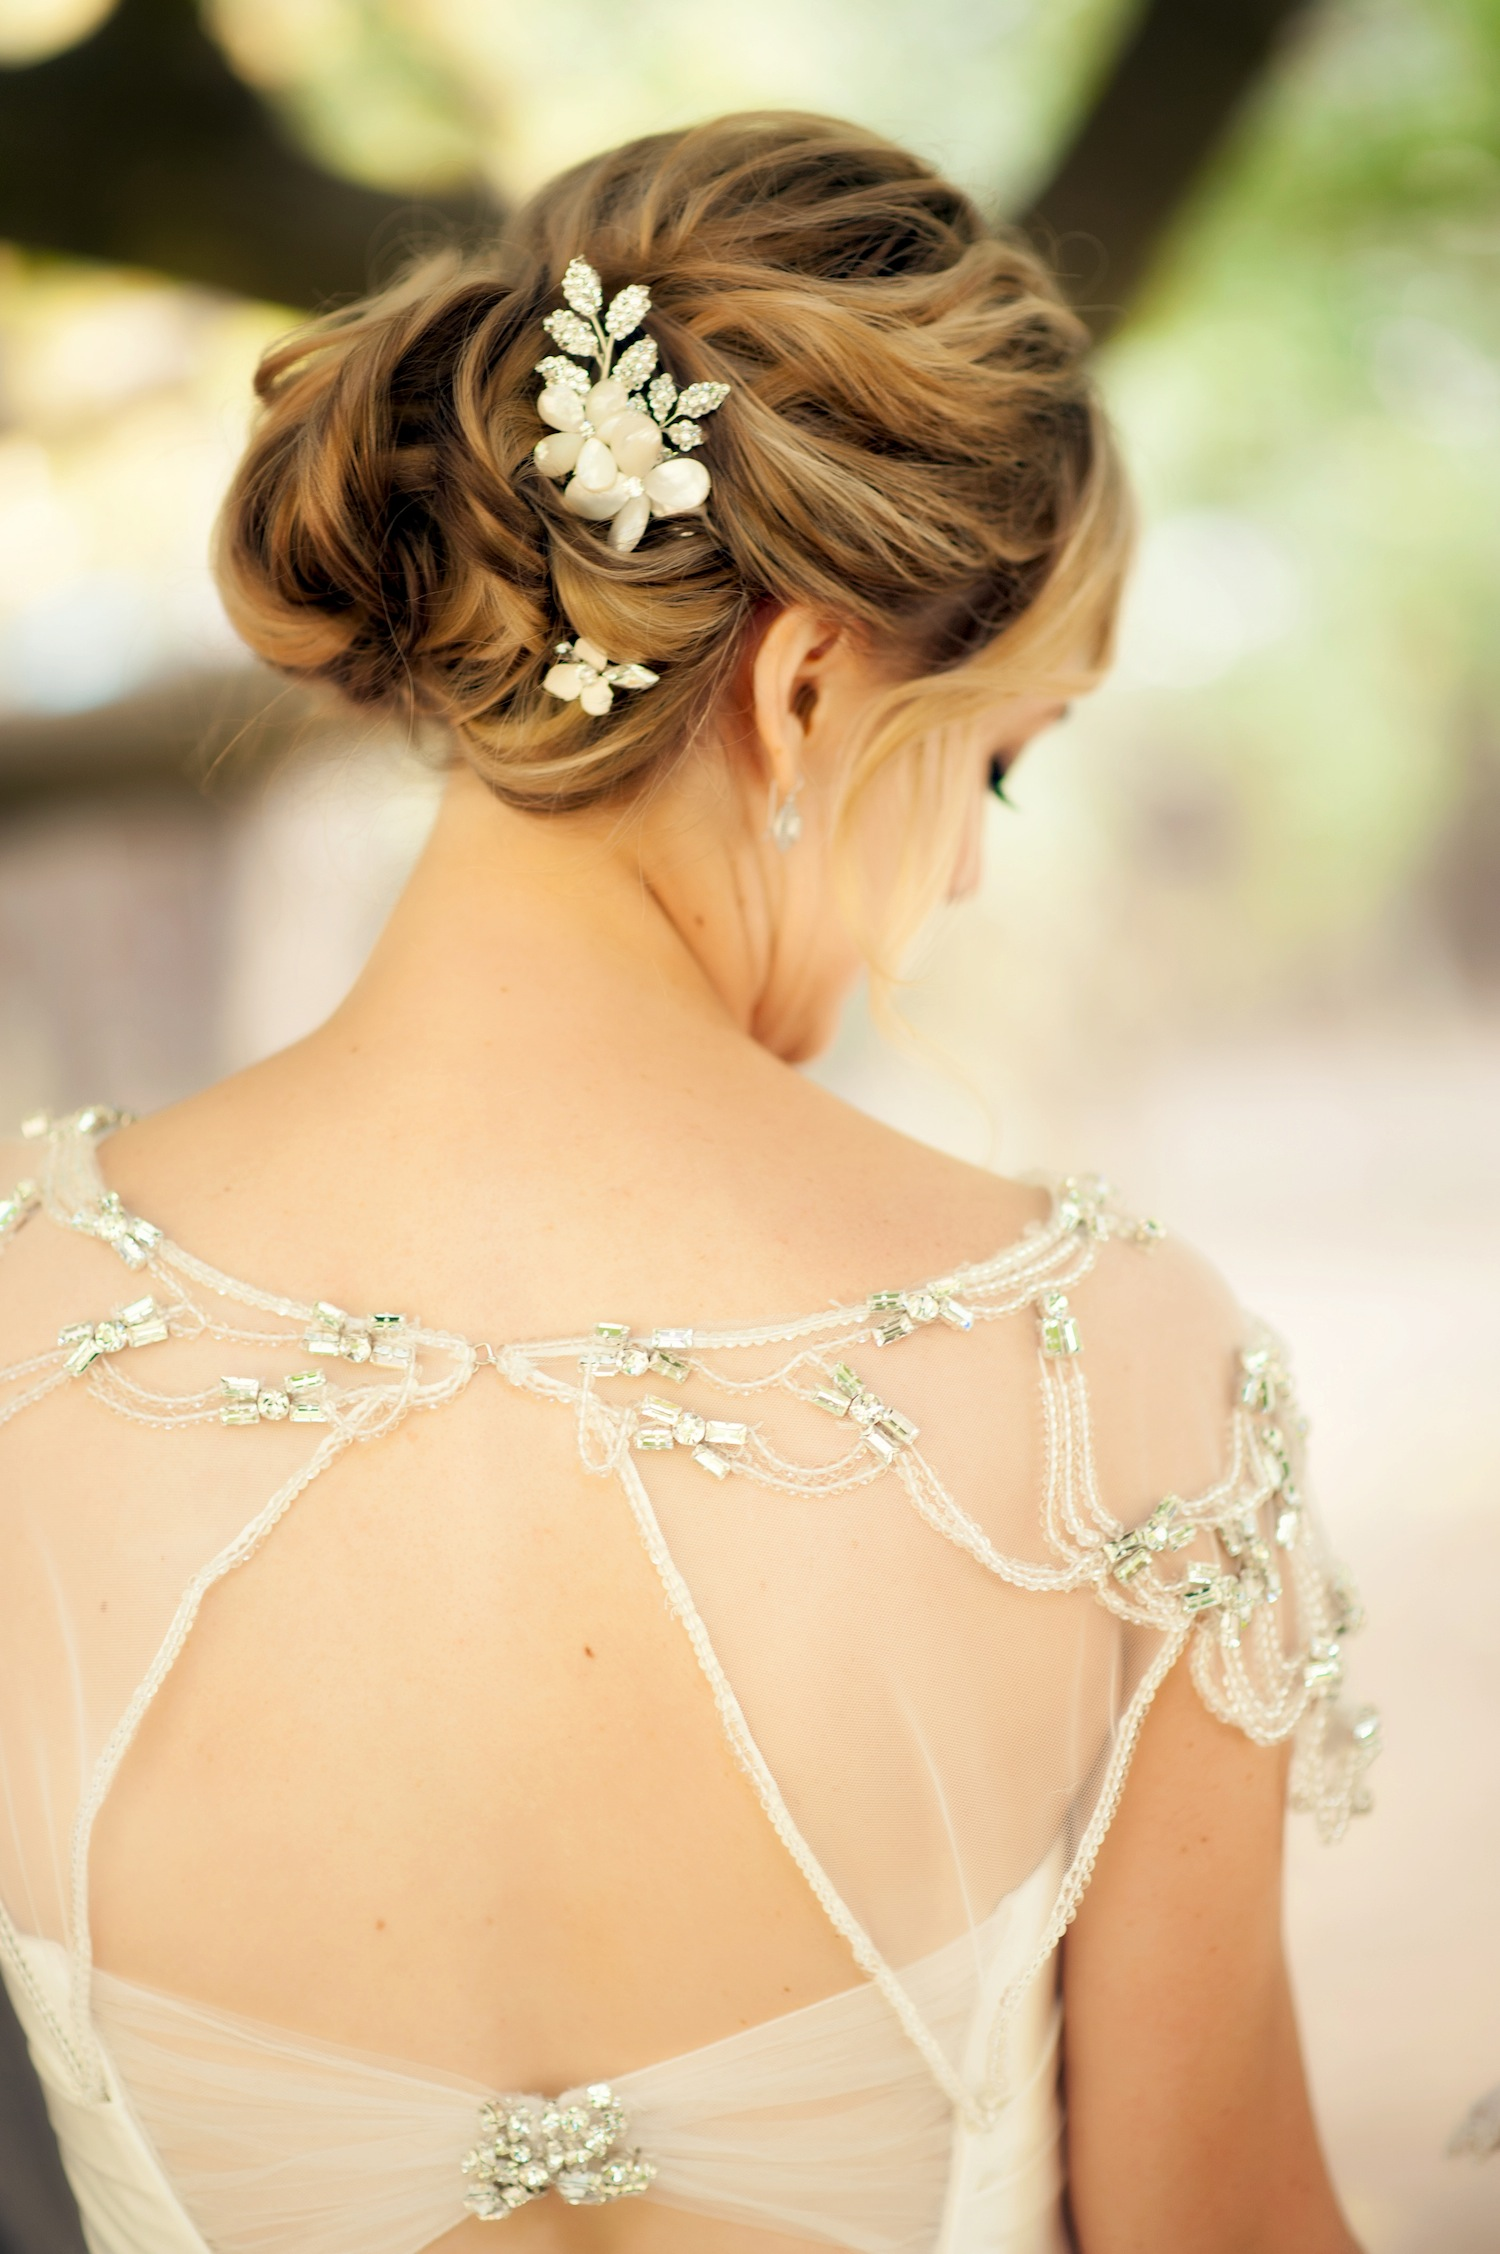 pearl and crystal hairpins in floral and leaf pattern